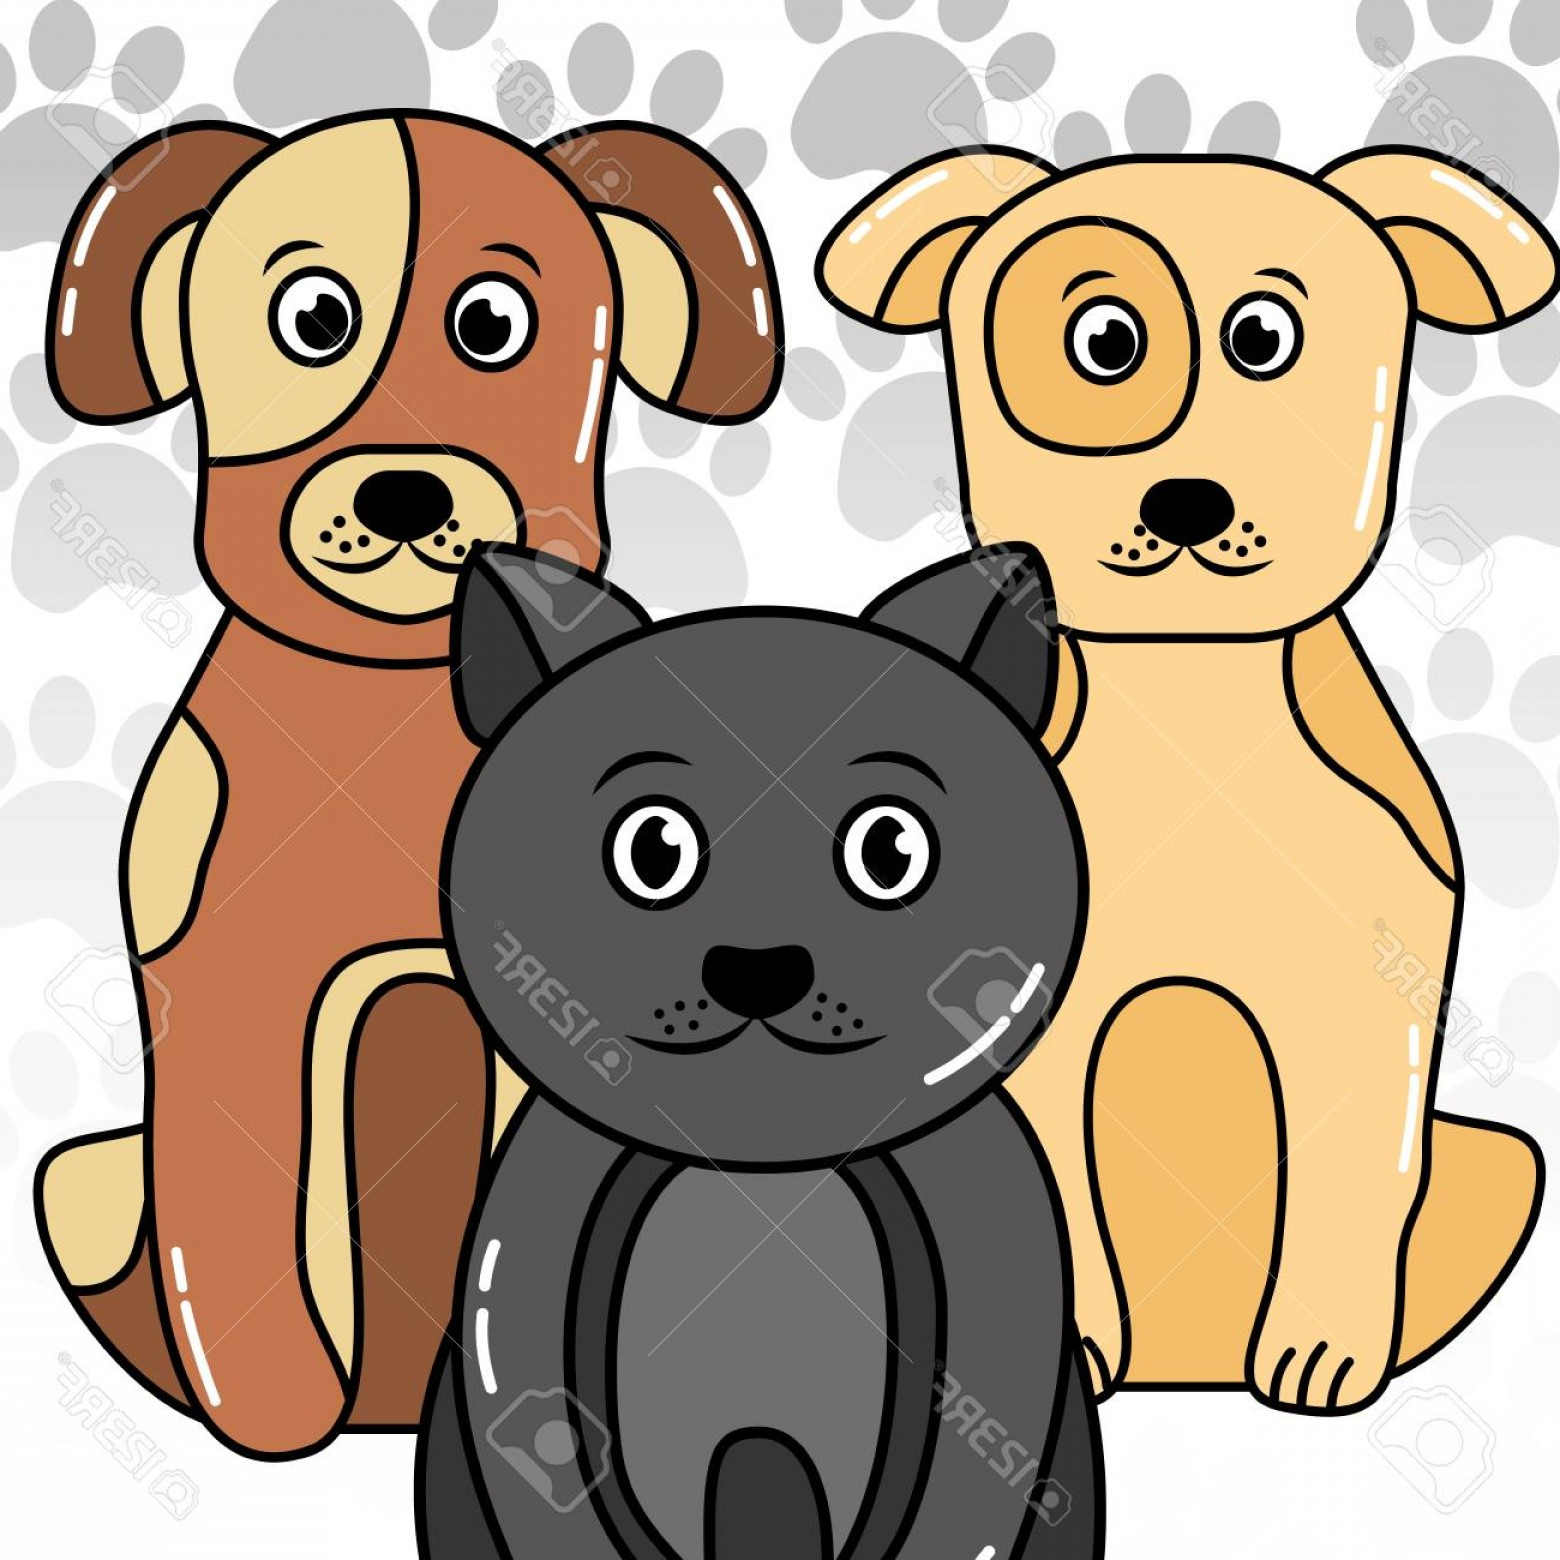 Dog And Cat Vector Illustration: Photostock Vector Dogs And Cat Vector Illustration